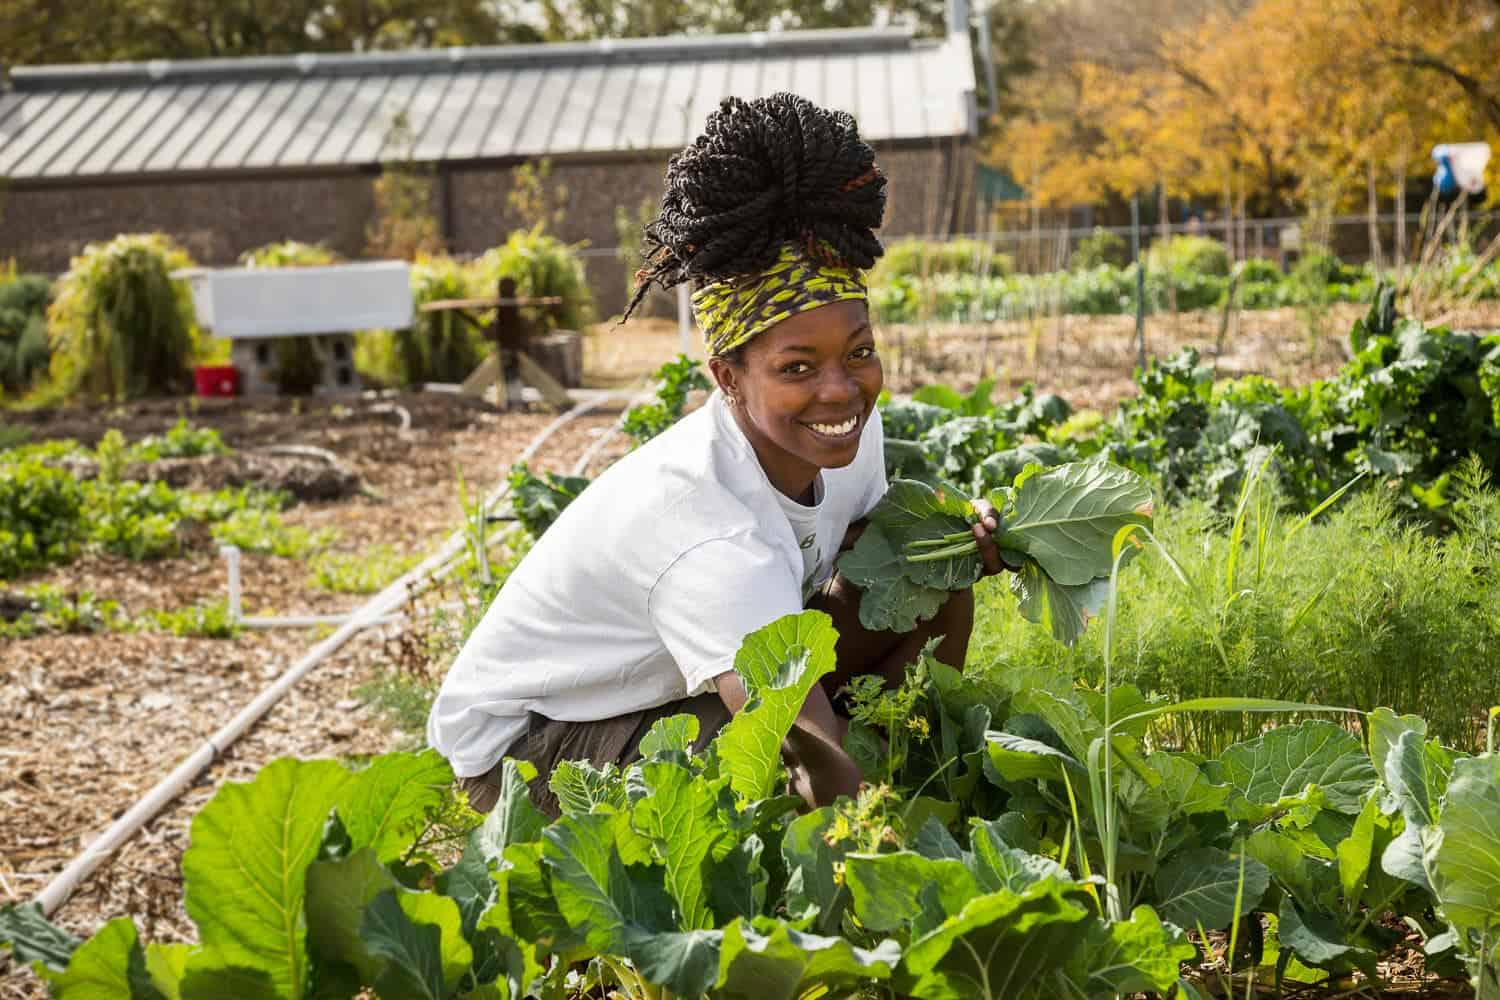 Youth Month: The sustainable future of the agriculture sector is in the hands of the young farmers, argues Aron Kole, MD of FarmSol. Photo: Supplied/Food For Mzansi